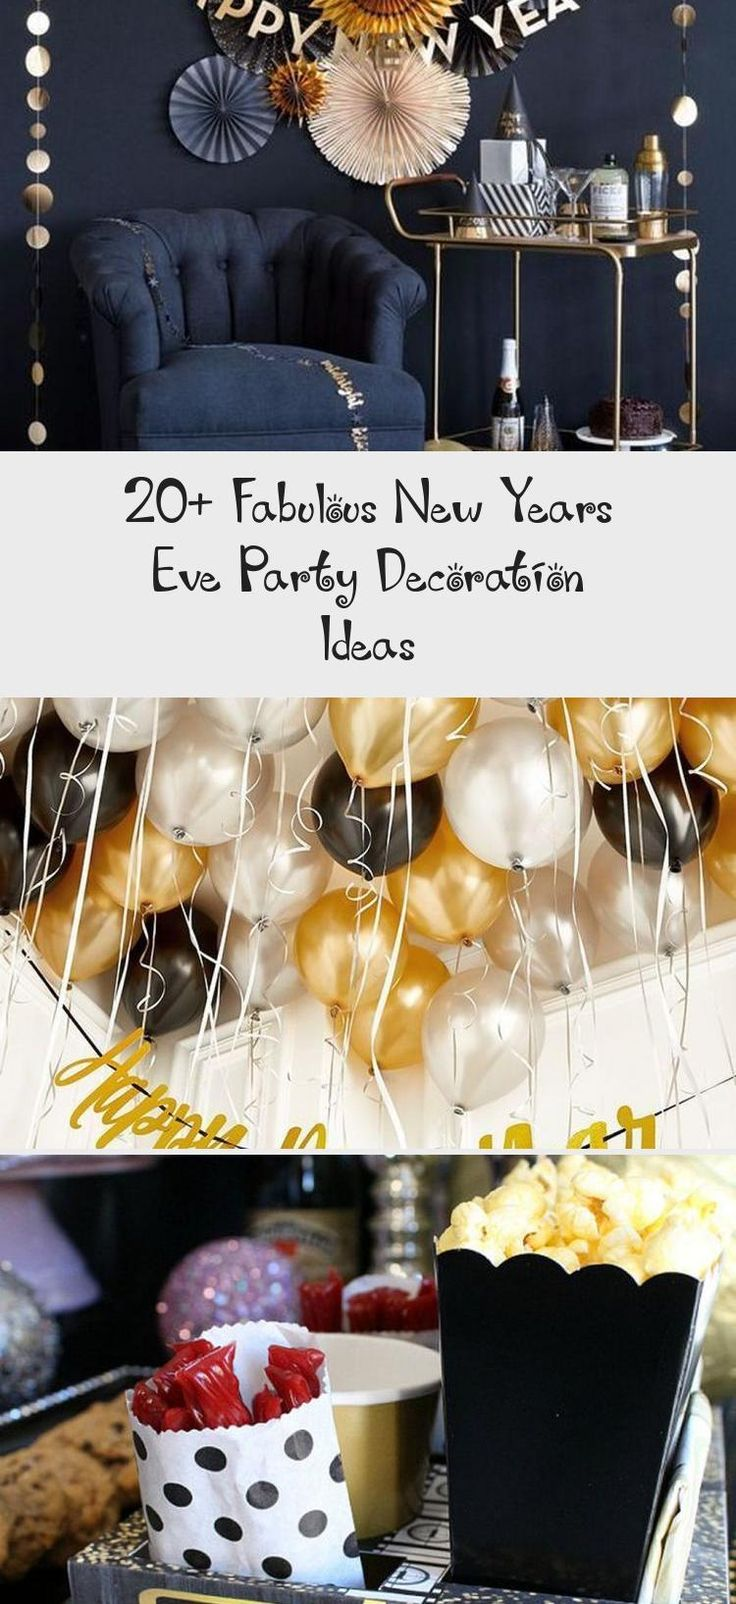 PartyDecorations2020 in 2020 Eve parties, Party